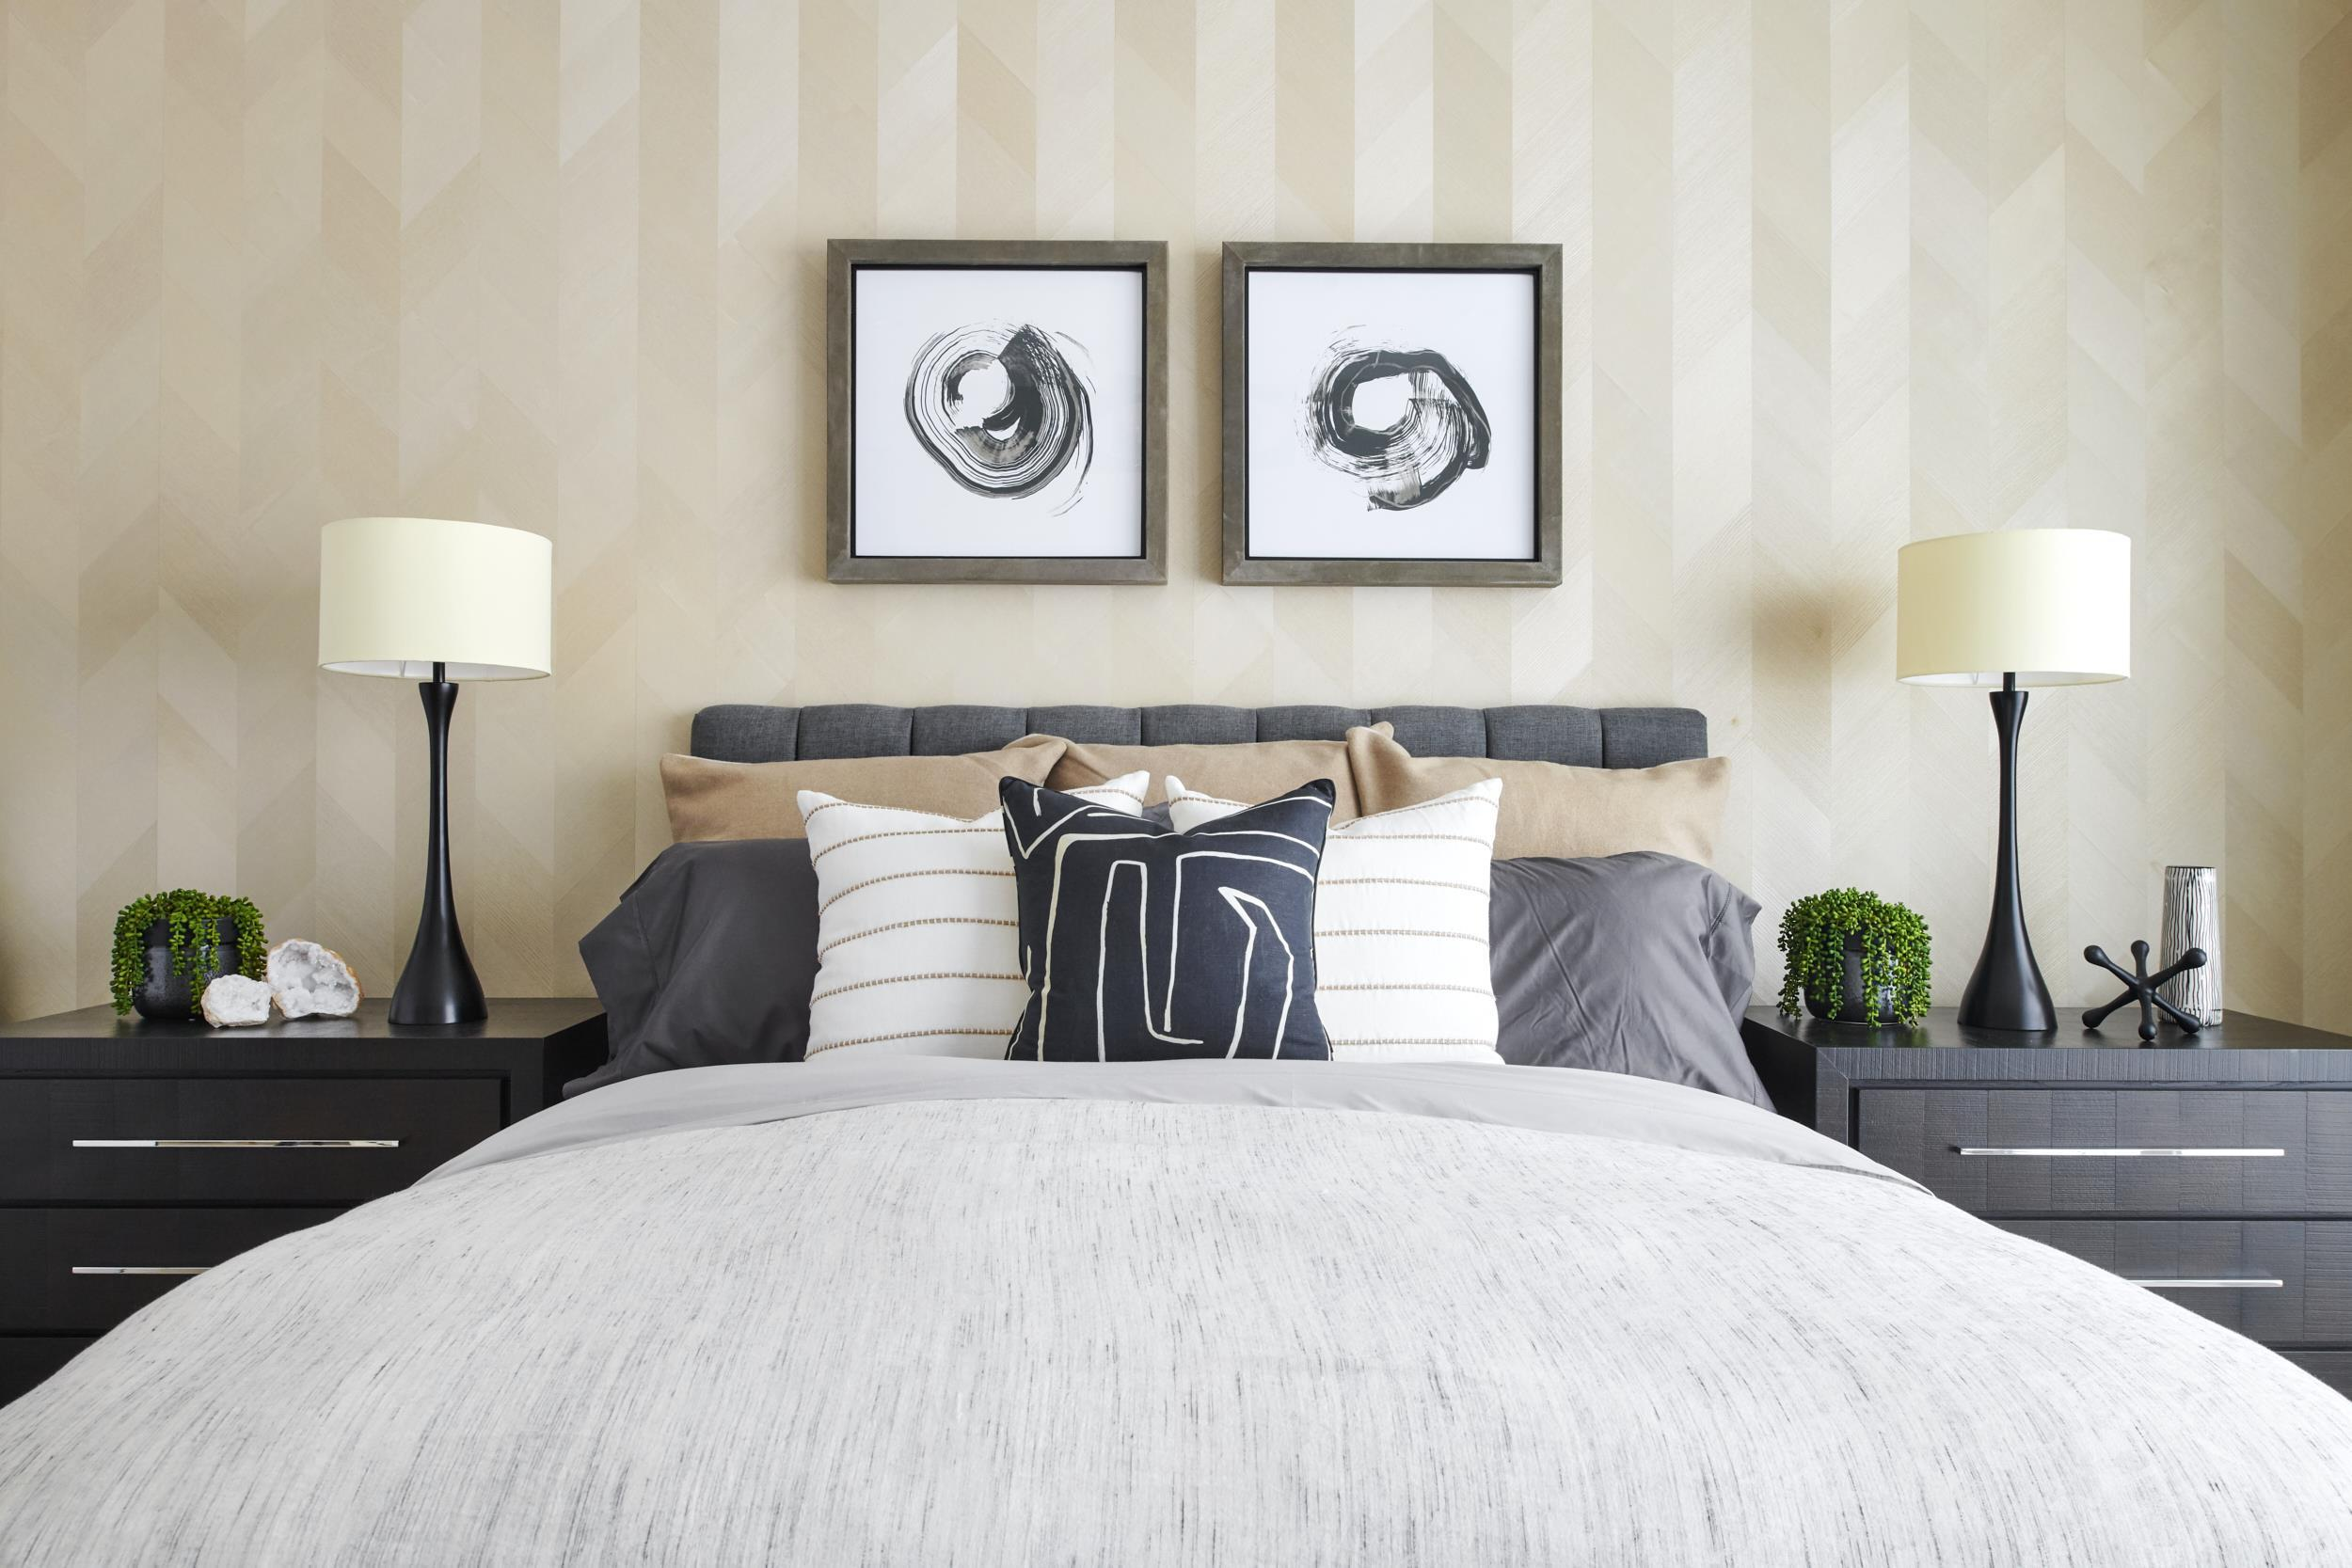 Bedroom featured in the Residence 1 By Trumark Homes in Stockton-Lodi, CA